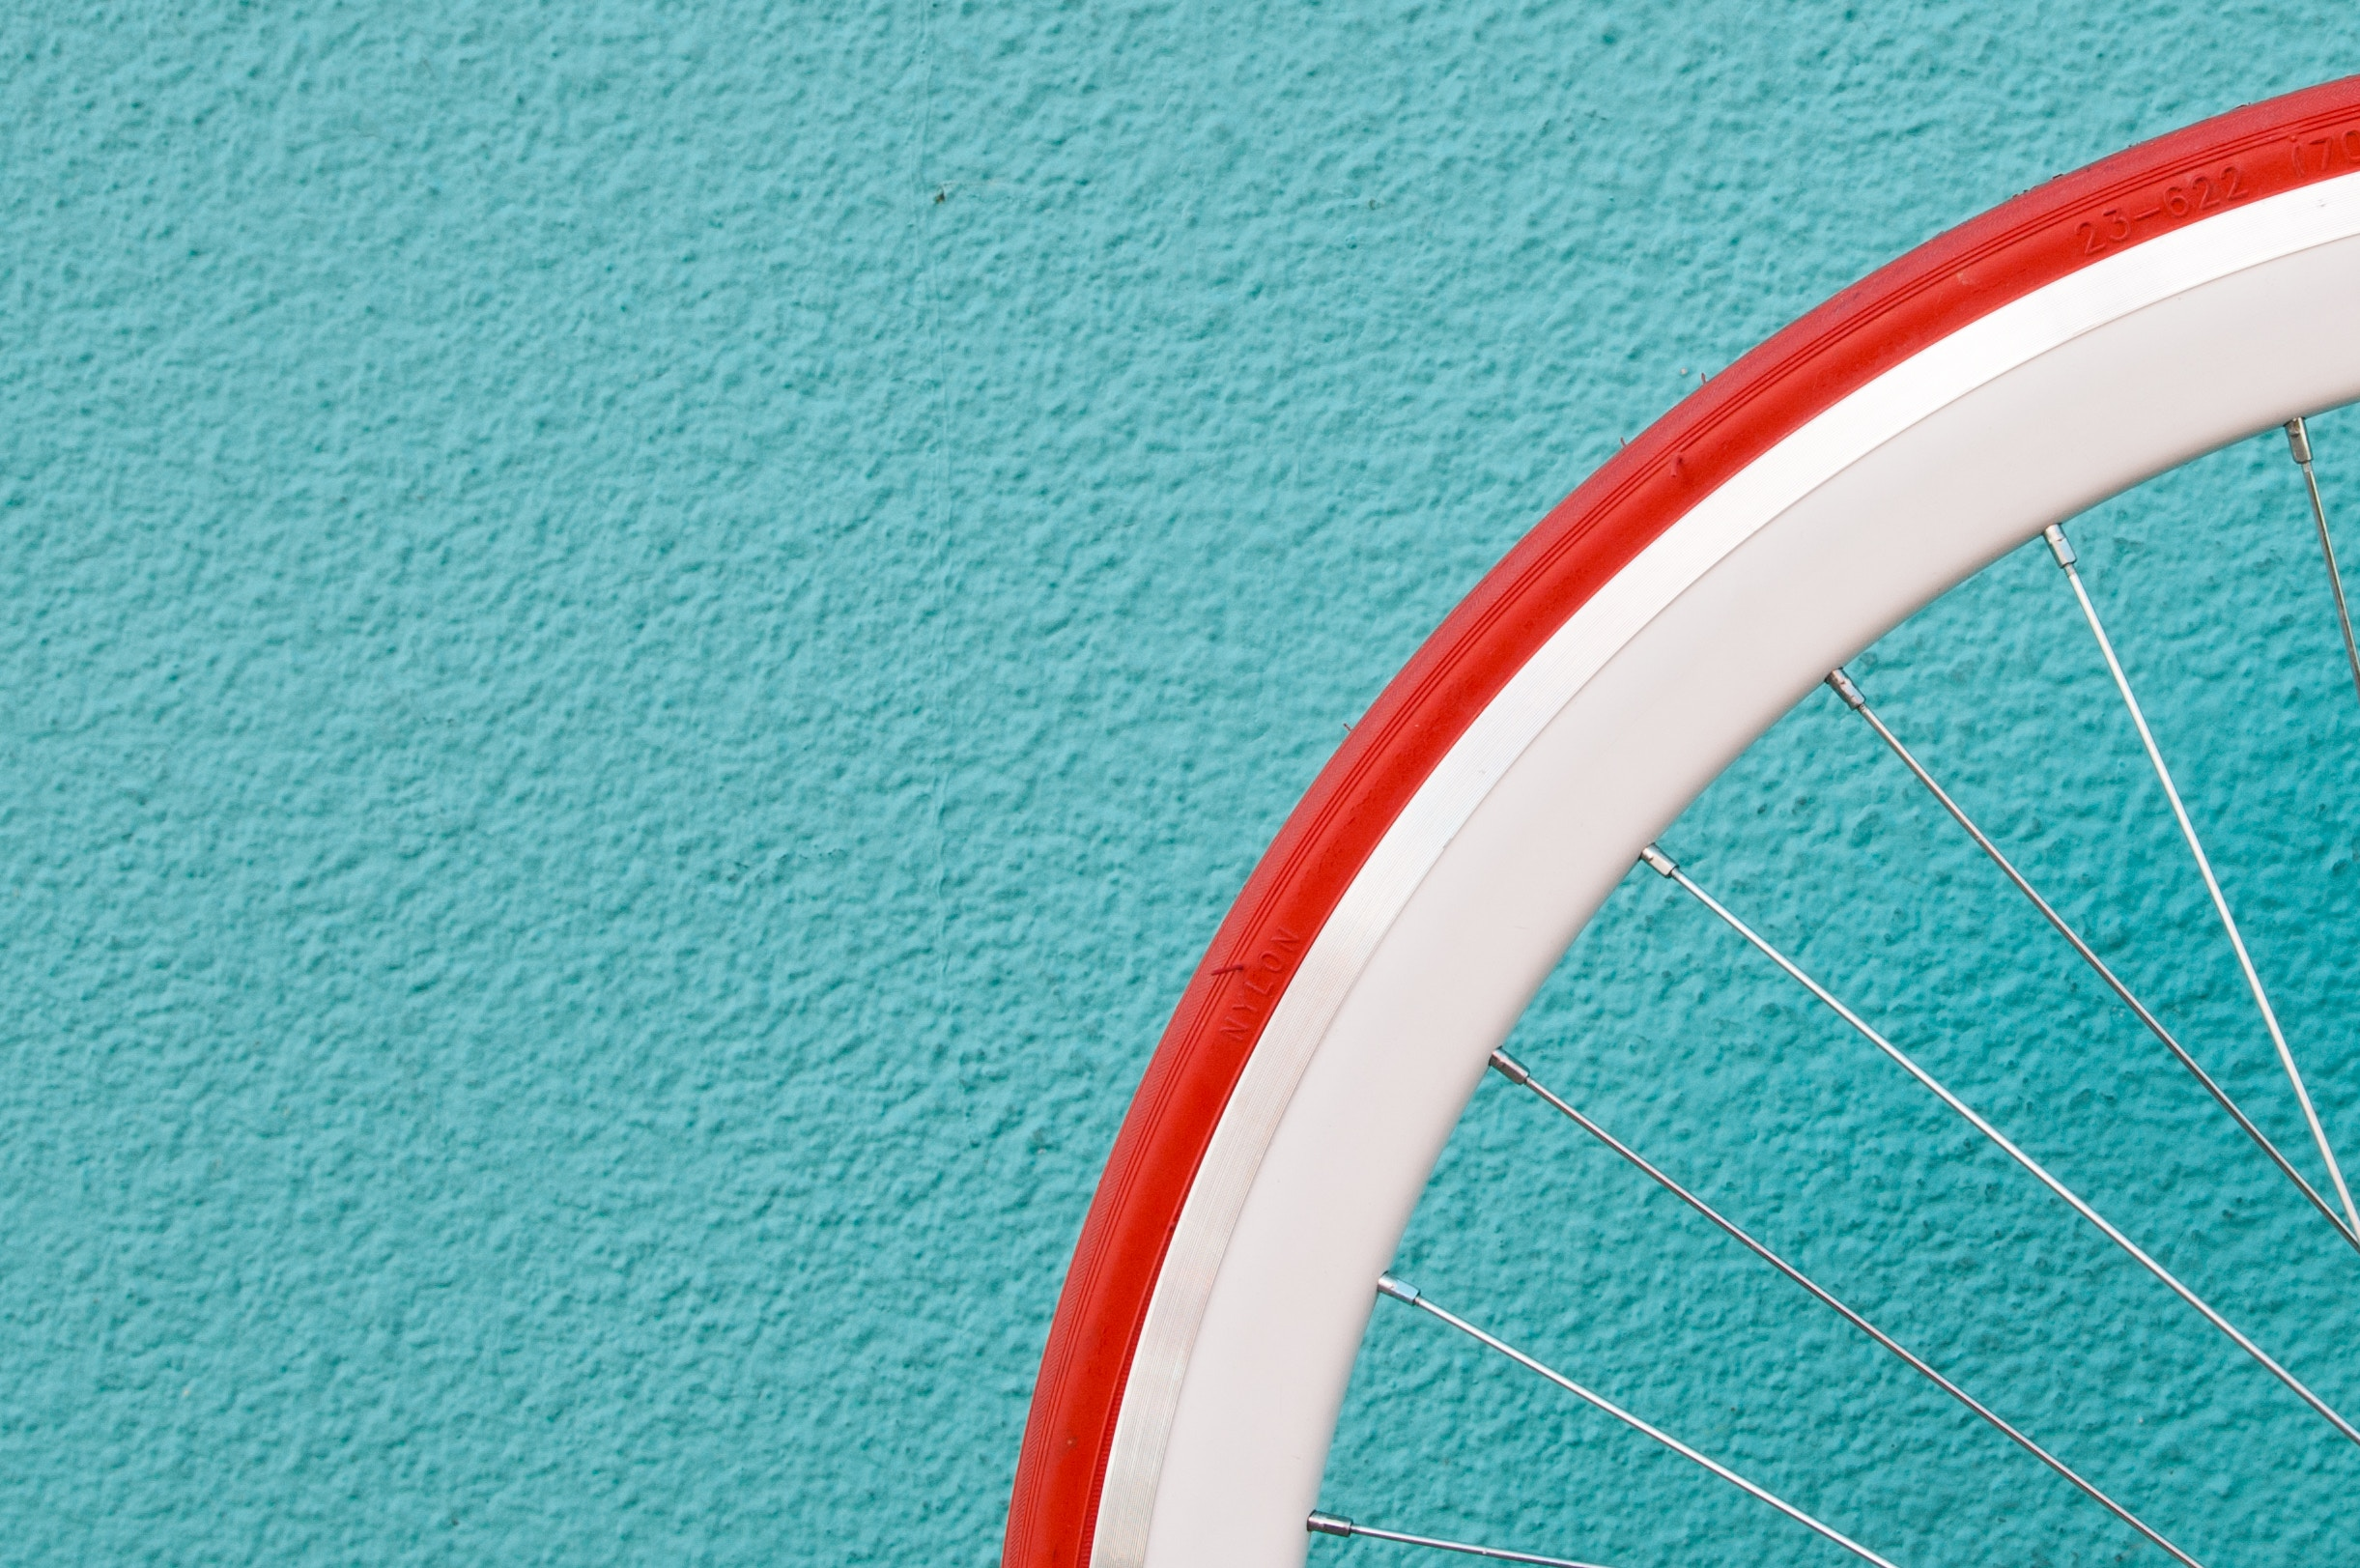 CYCLE | Circular economy competences making the case for lifelong learning